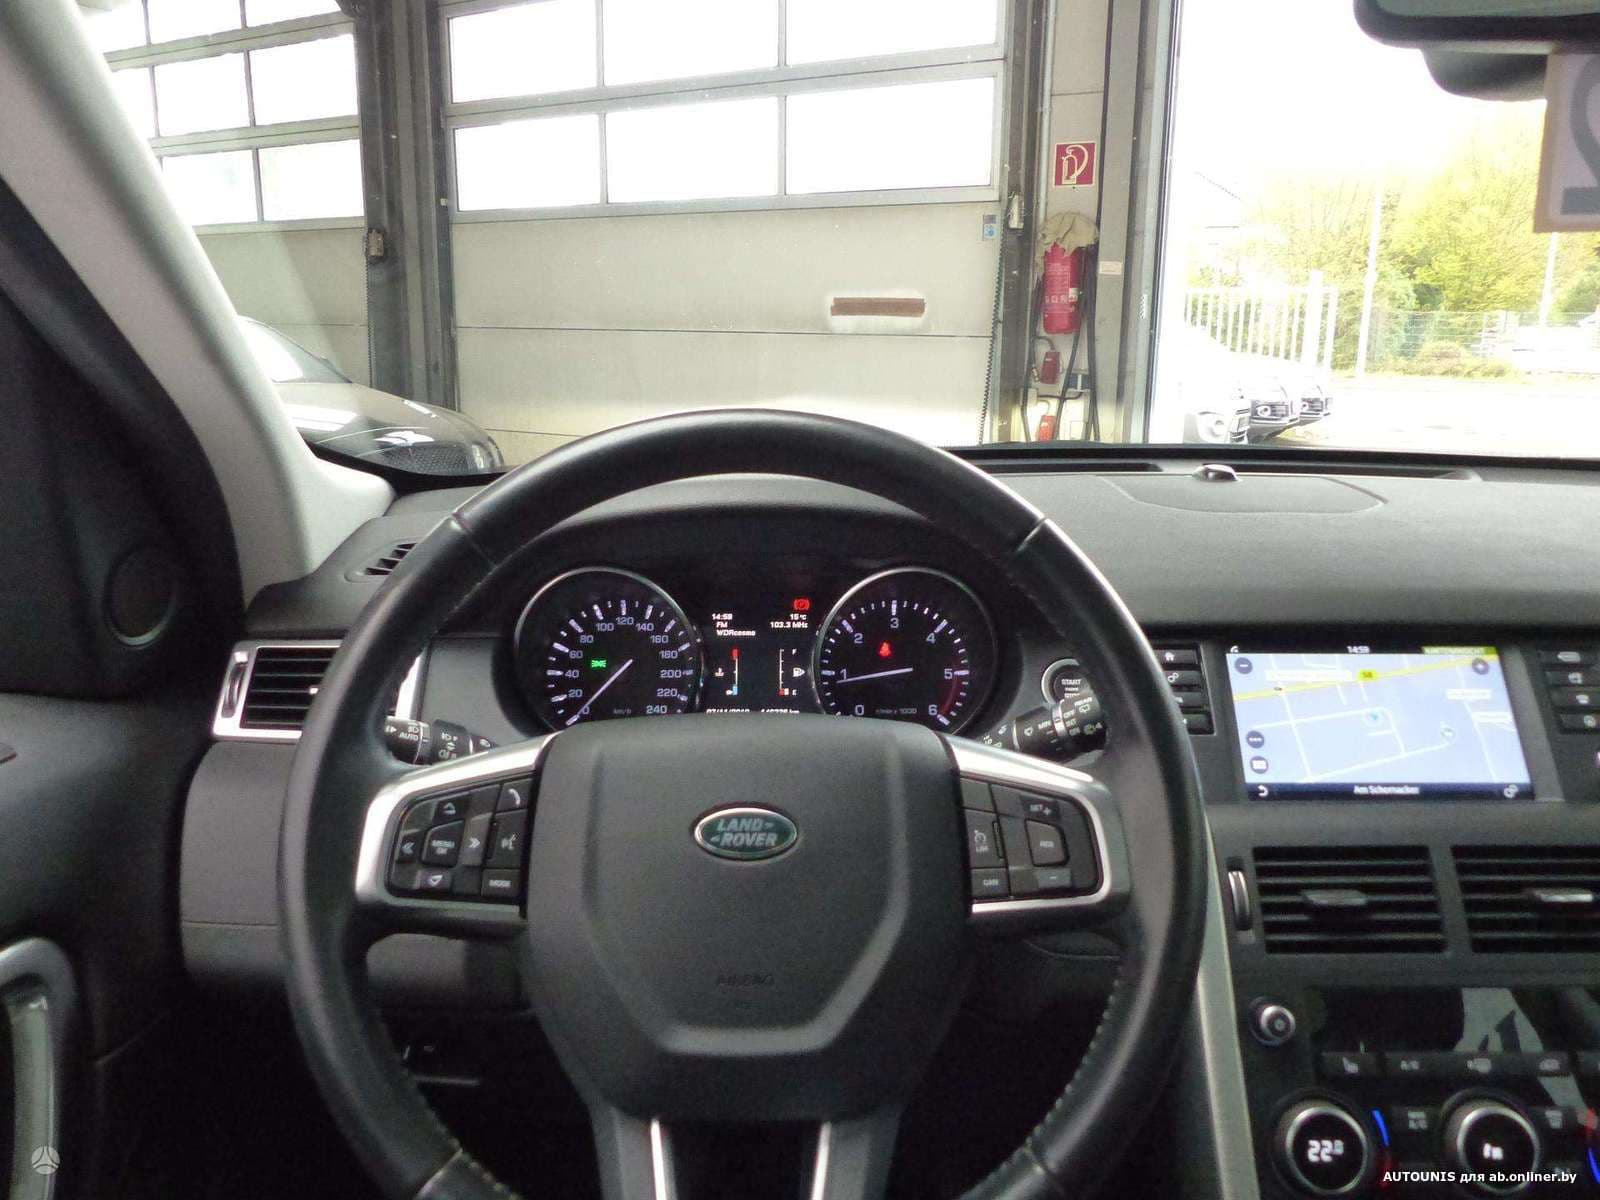 Land Rover Discovery Sport 2.2 TDI I